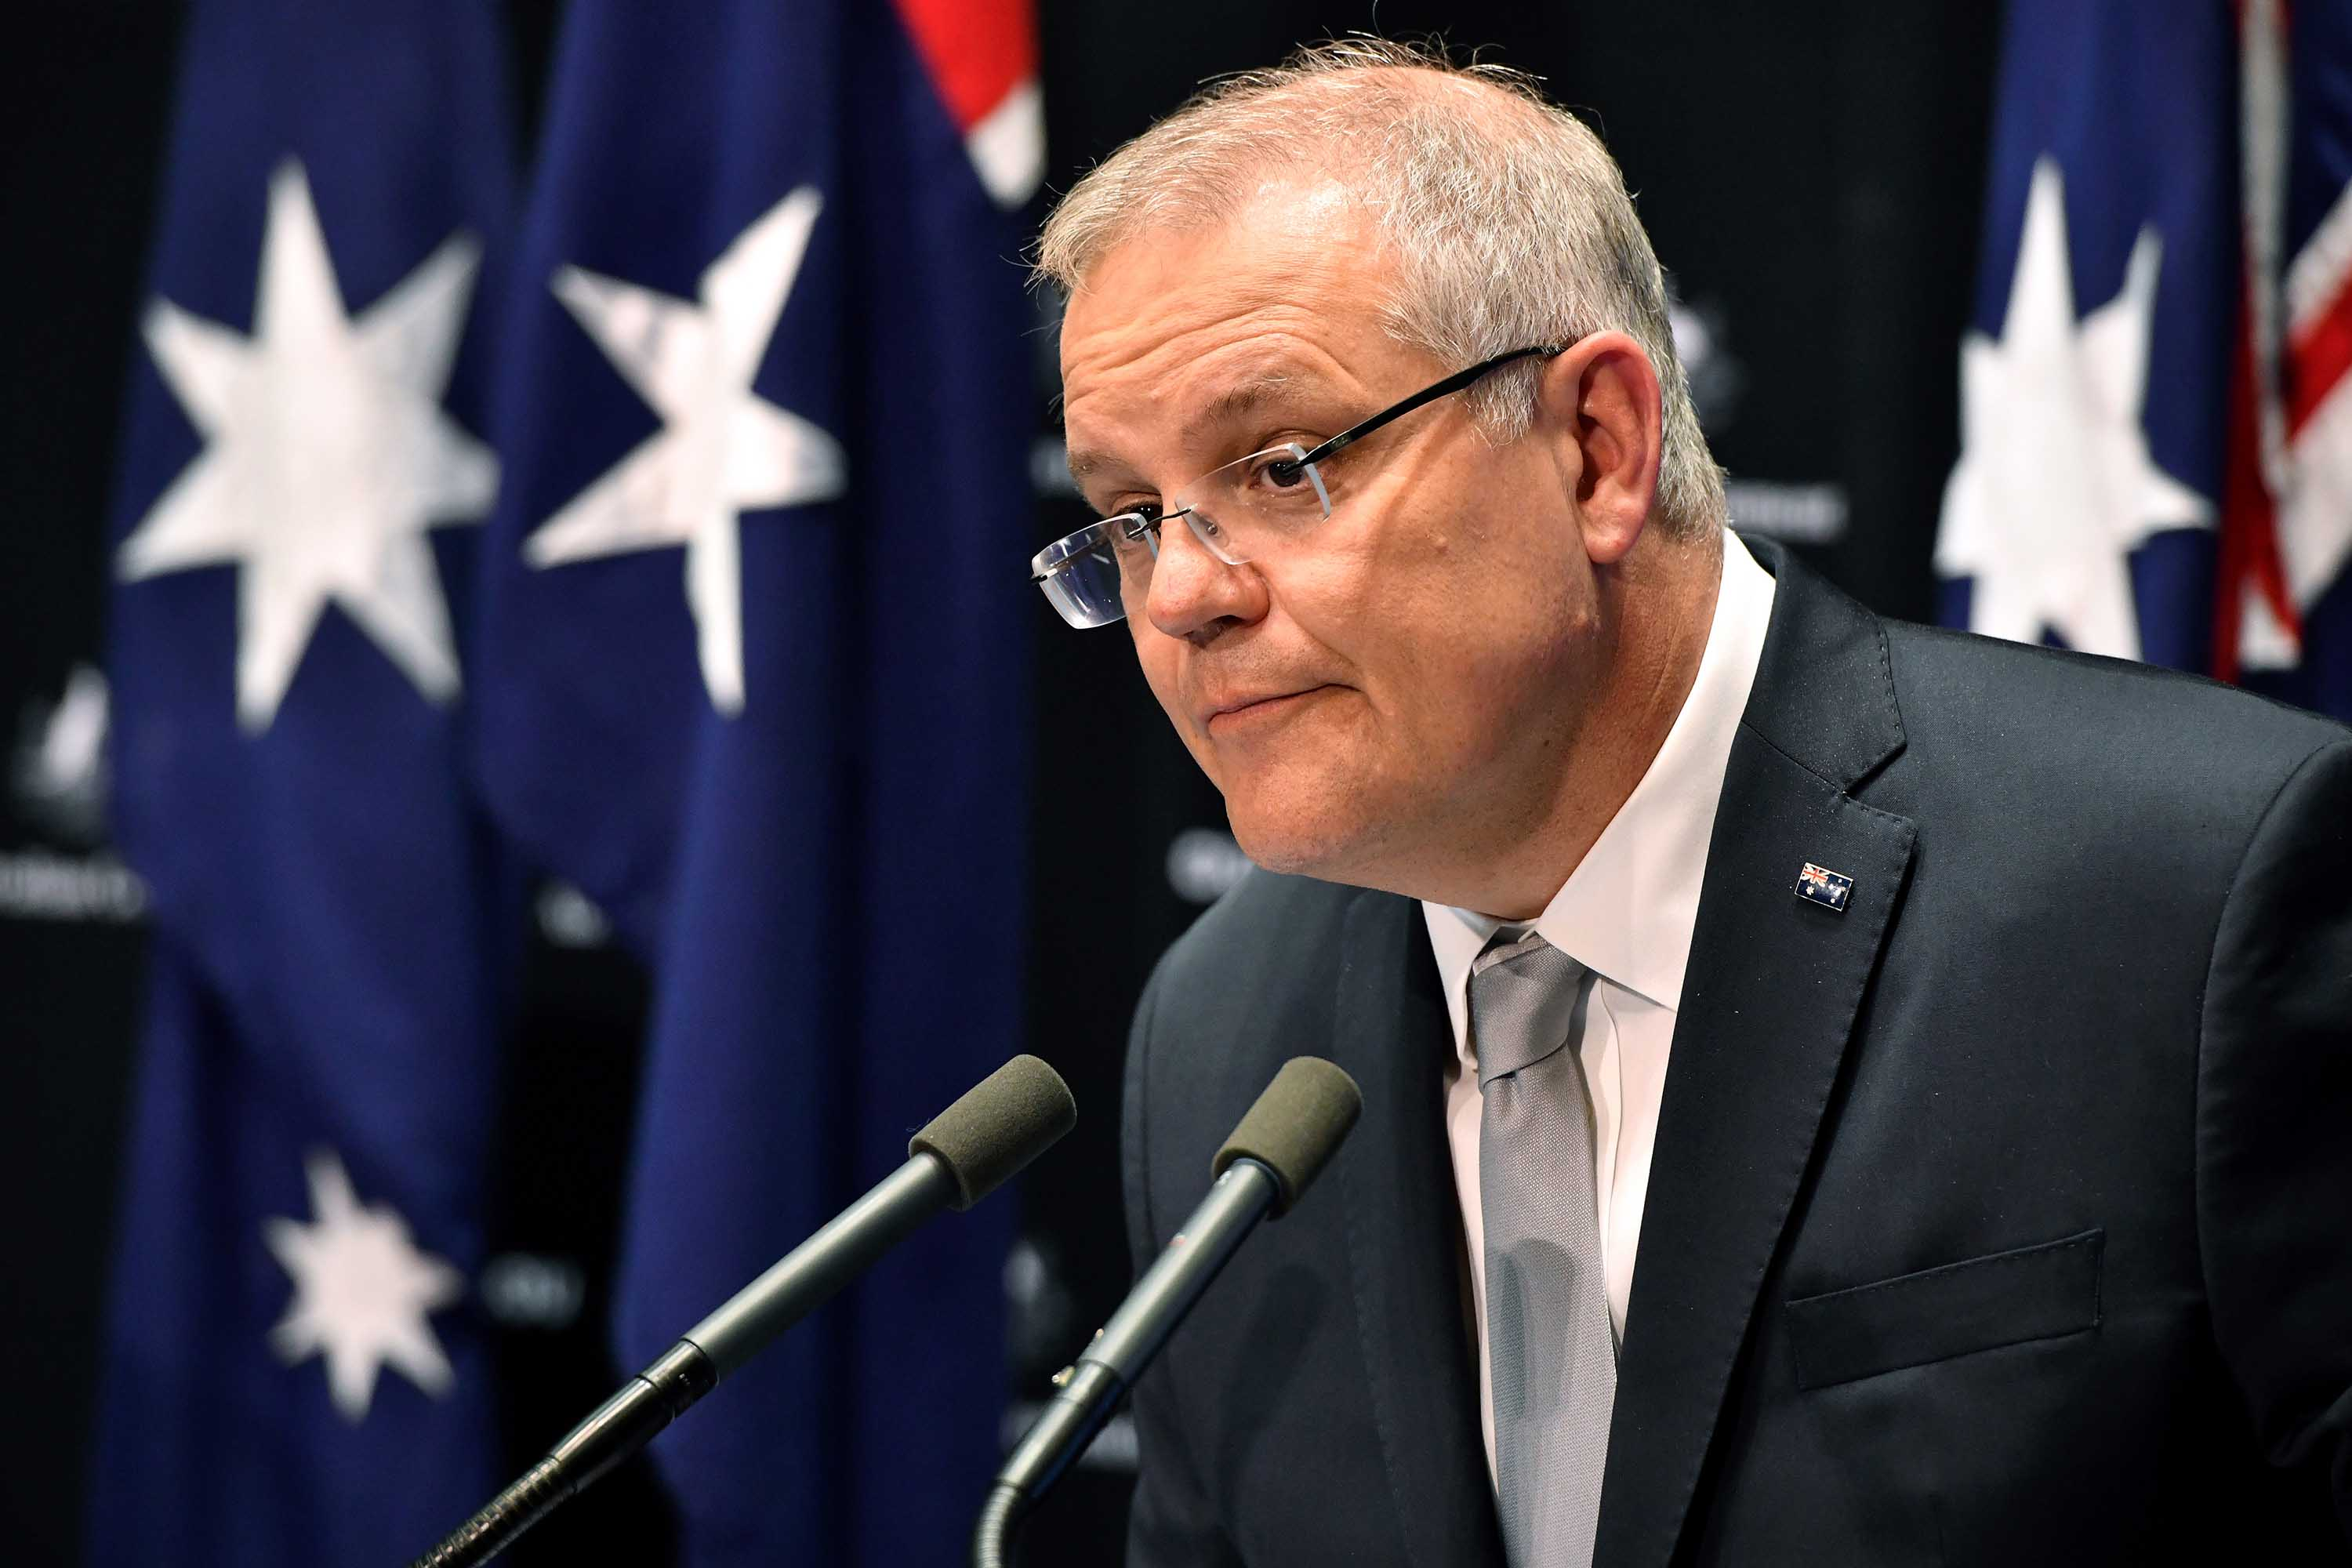 Australian Prime Minister Scott Morrison attends a news conference at Parliament House in Canberra, Australia, on Thursday.